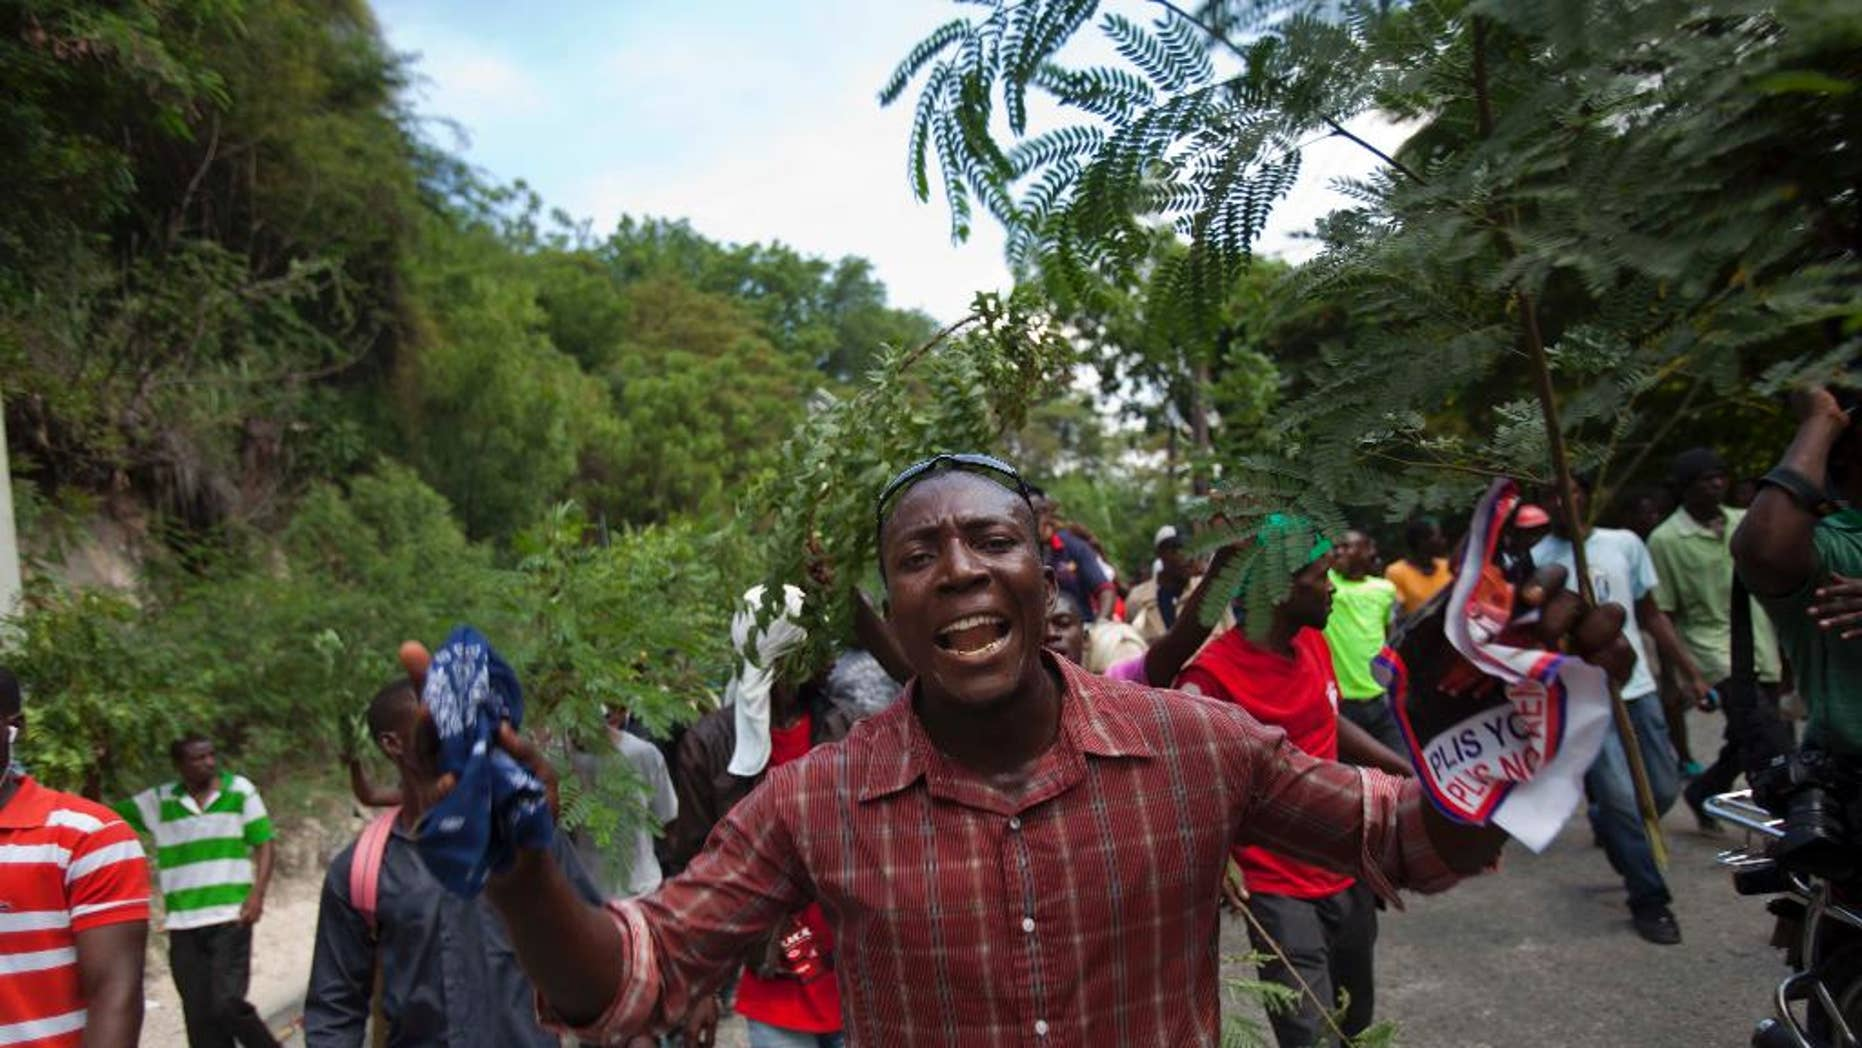 Demonstrators march during an anti-government protest in Port-au-Prince, Haiti, Sunday, Oct. 26, 2014. A few thousand protesters allied with Haiti's opposition marched through neighborhoods of the capital demanding the chance to vote in legislative and local elections that are three years late, among other grievances. (AP Photo/Dieu Nalio Chery)